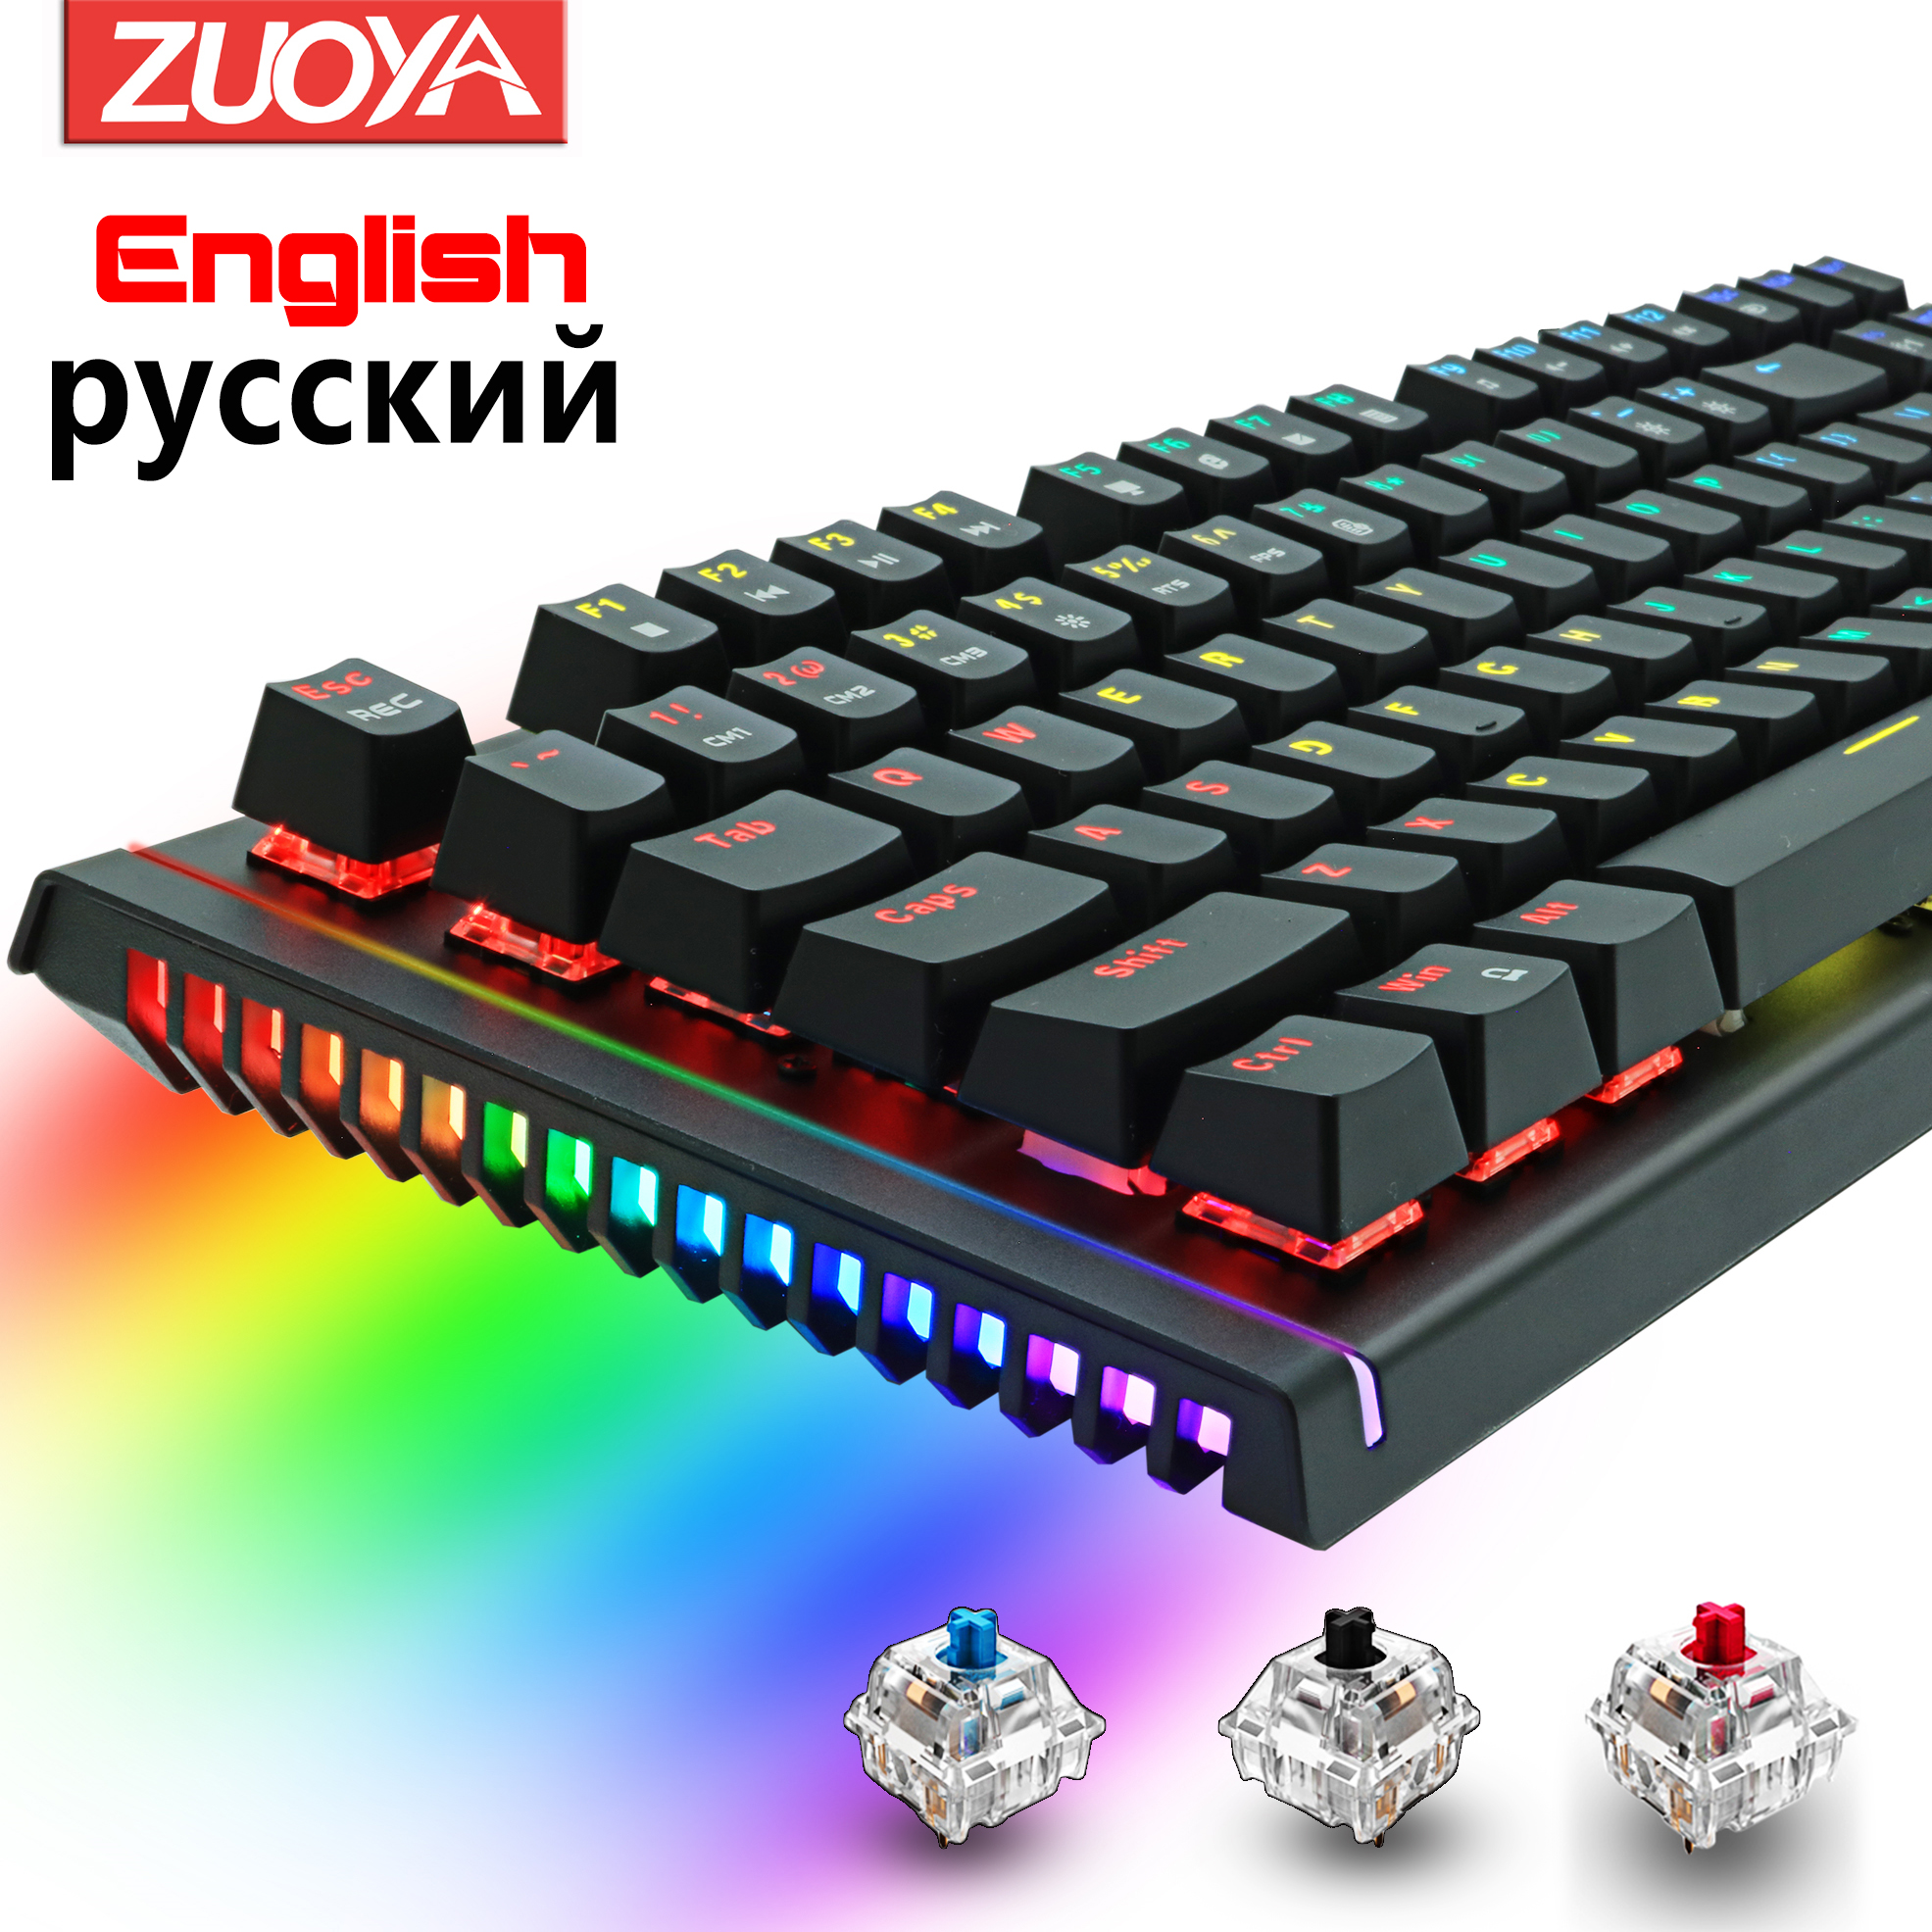 Up To 43% Off On Mechanical Keyboard Wired Gaming Keyboard RGB Mix Backlit 87 104 Anti-ghosting Blue Red Switch For Game Laptop PC Russian US